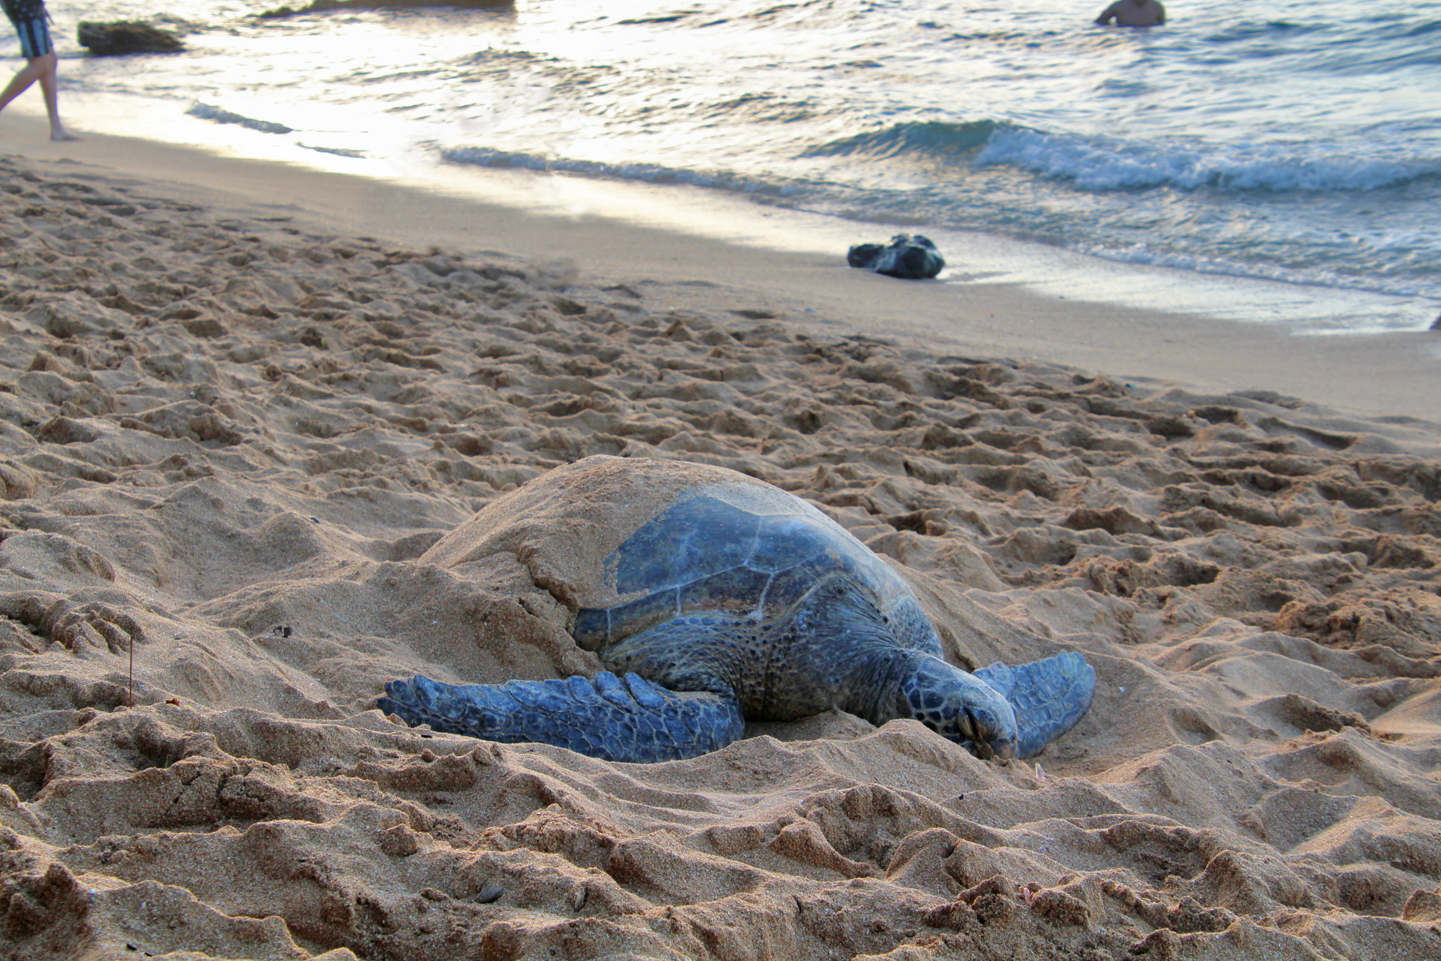 Turtle on the beach on the North Shore